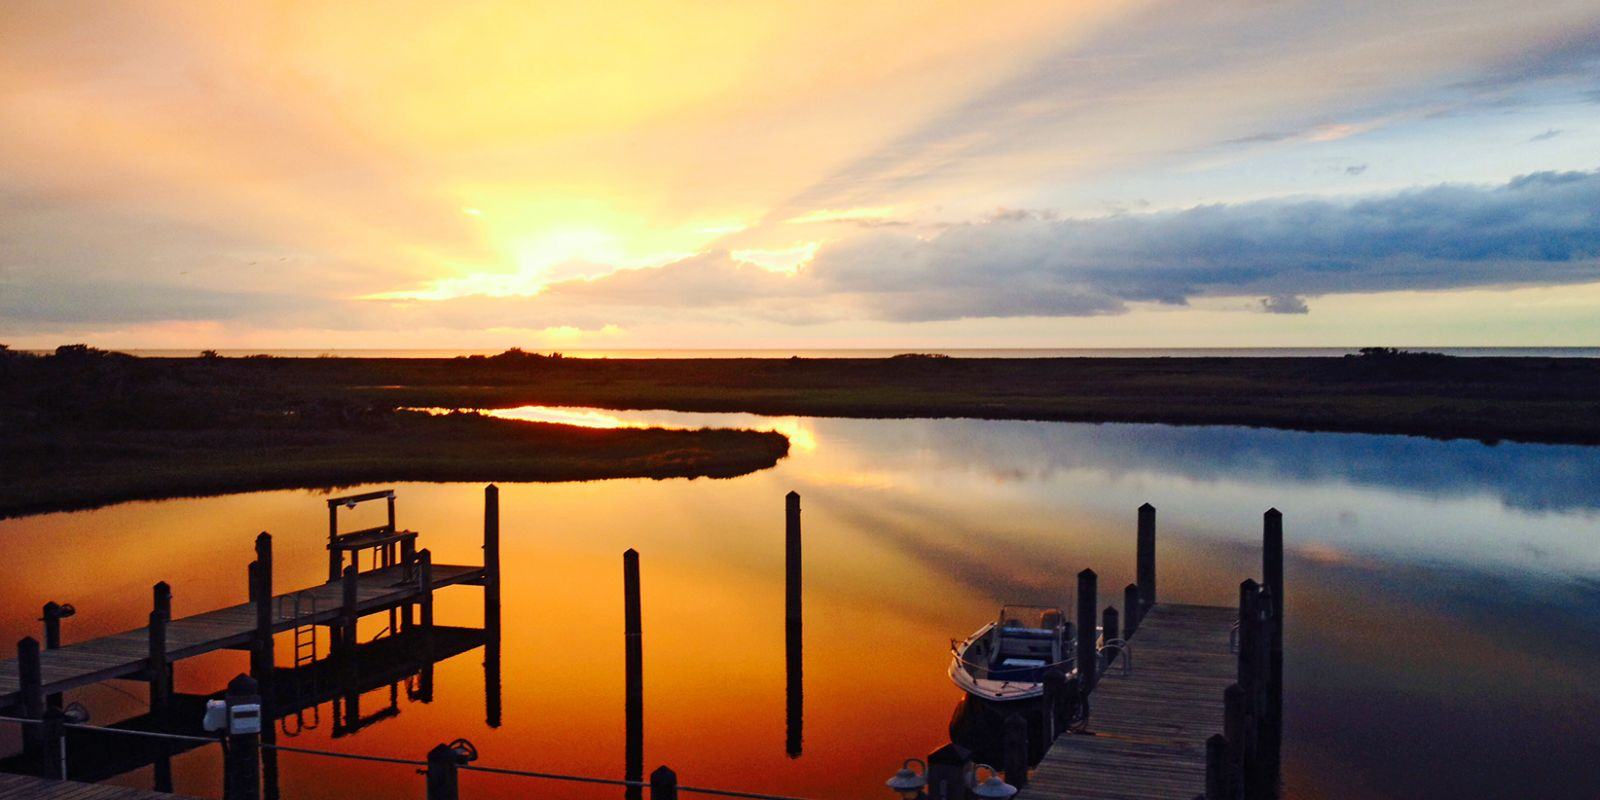 Noah's Folly Sunset in Hatteras, NC